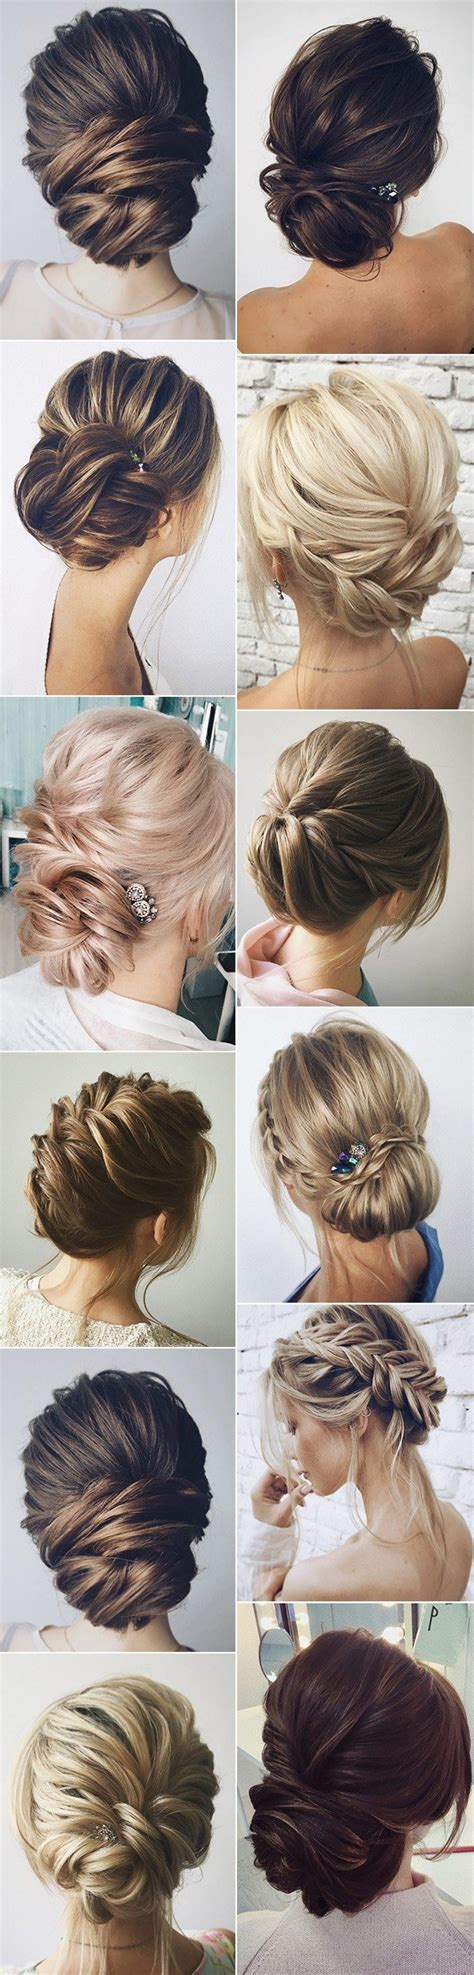 Wedding Hairstyles Updo by Bridal Updos Wedding Hairstyles